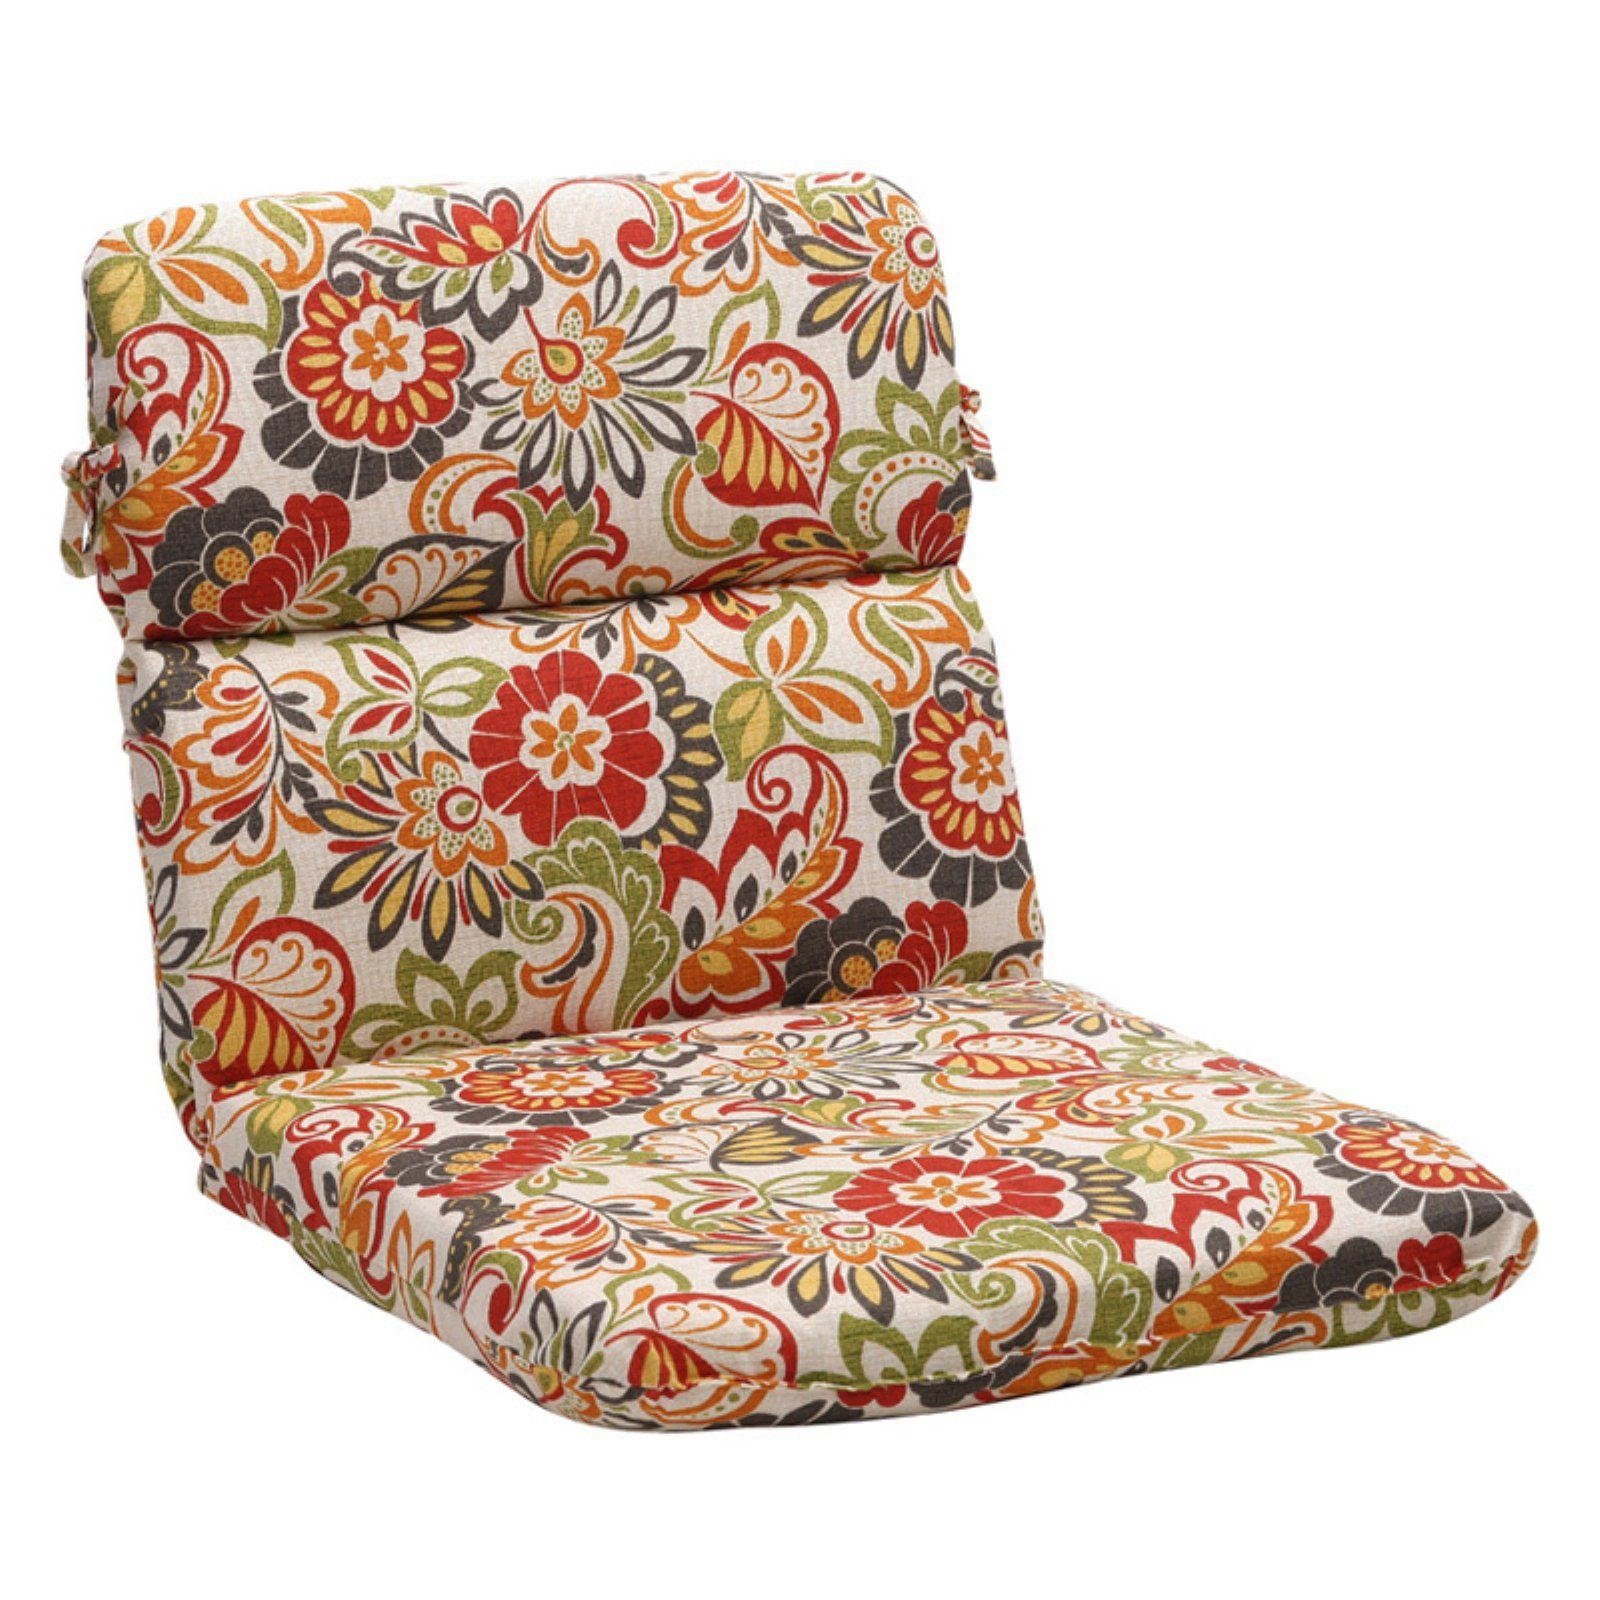 Pillow Perfect Outdoor Floral Chair Cushion 40 5 X 21 X 3 In